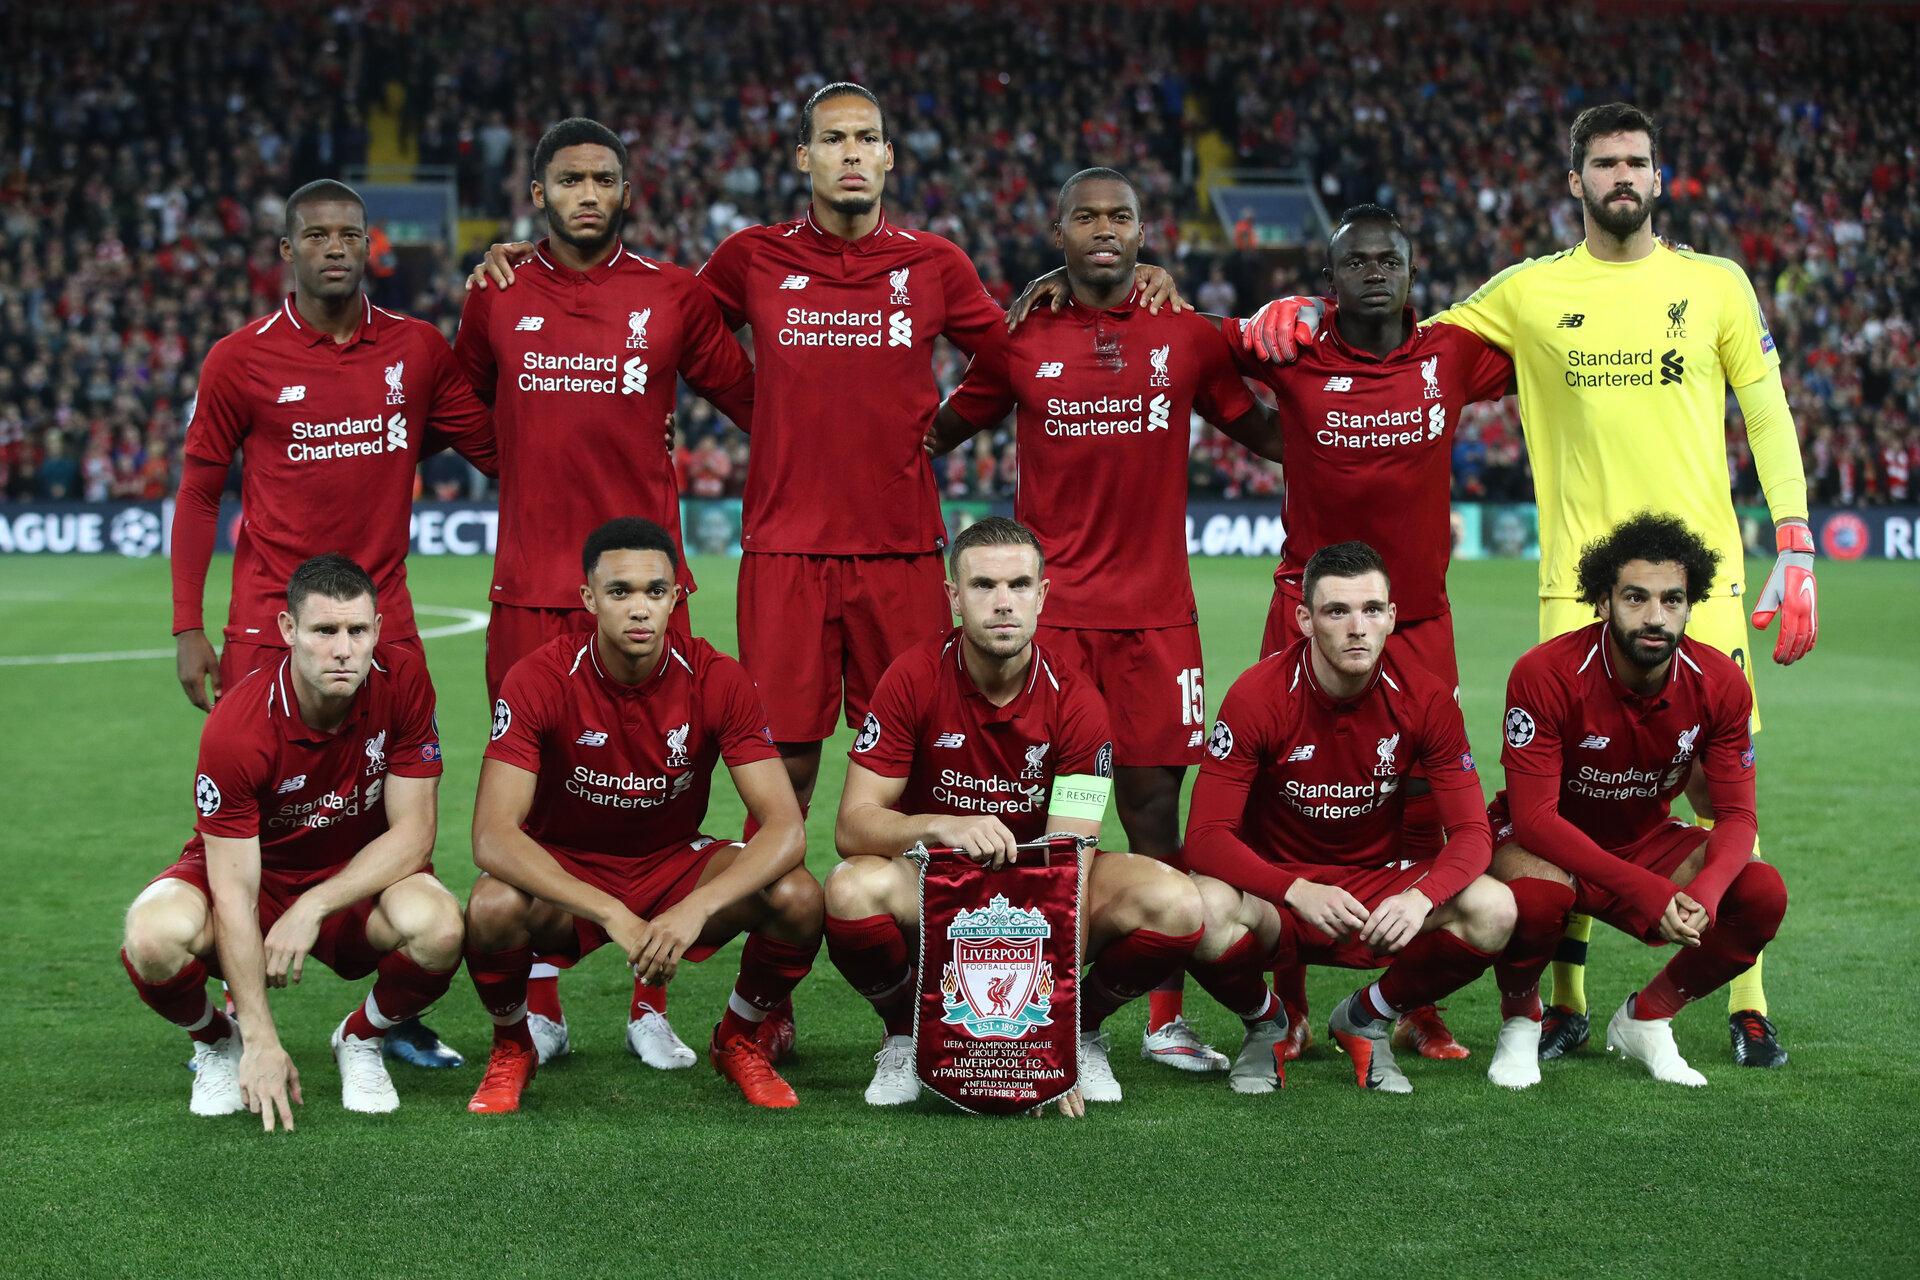 LIVERPOOL, ENGLAND - SEPTEMBER 18:  Liverpool line up prior to the Group C match of the UEFA Champions League between Liverpool and Paris Saint-Germain at Anfield on September 18, 2018 in Liverpool, United Kingdom.  (Photo by Julian Finney/Getty Images)